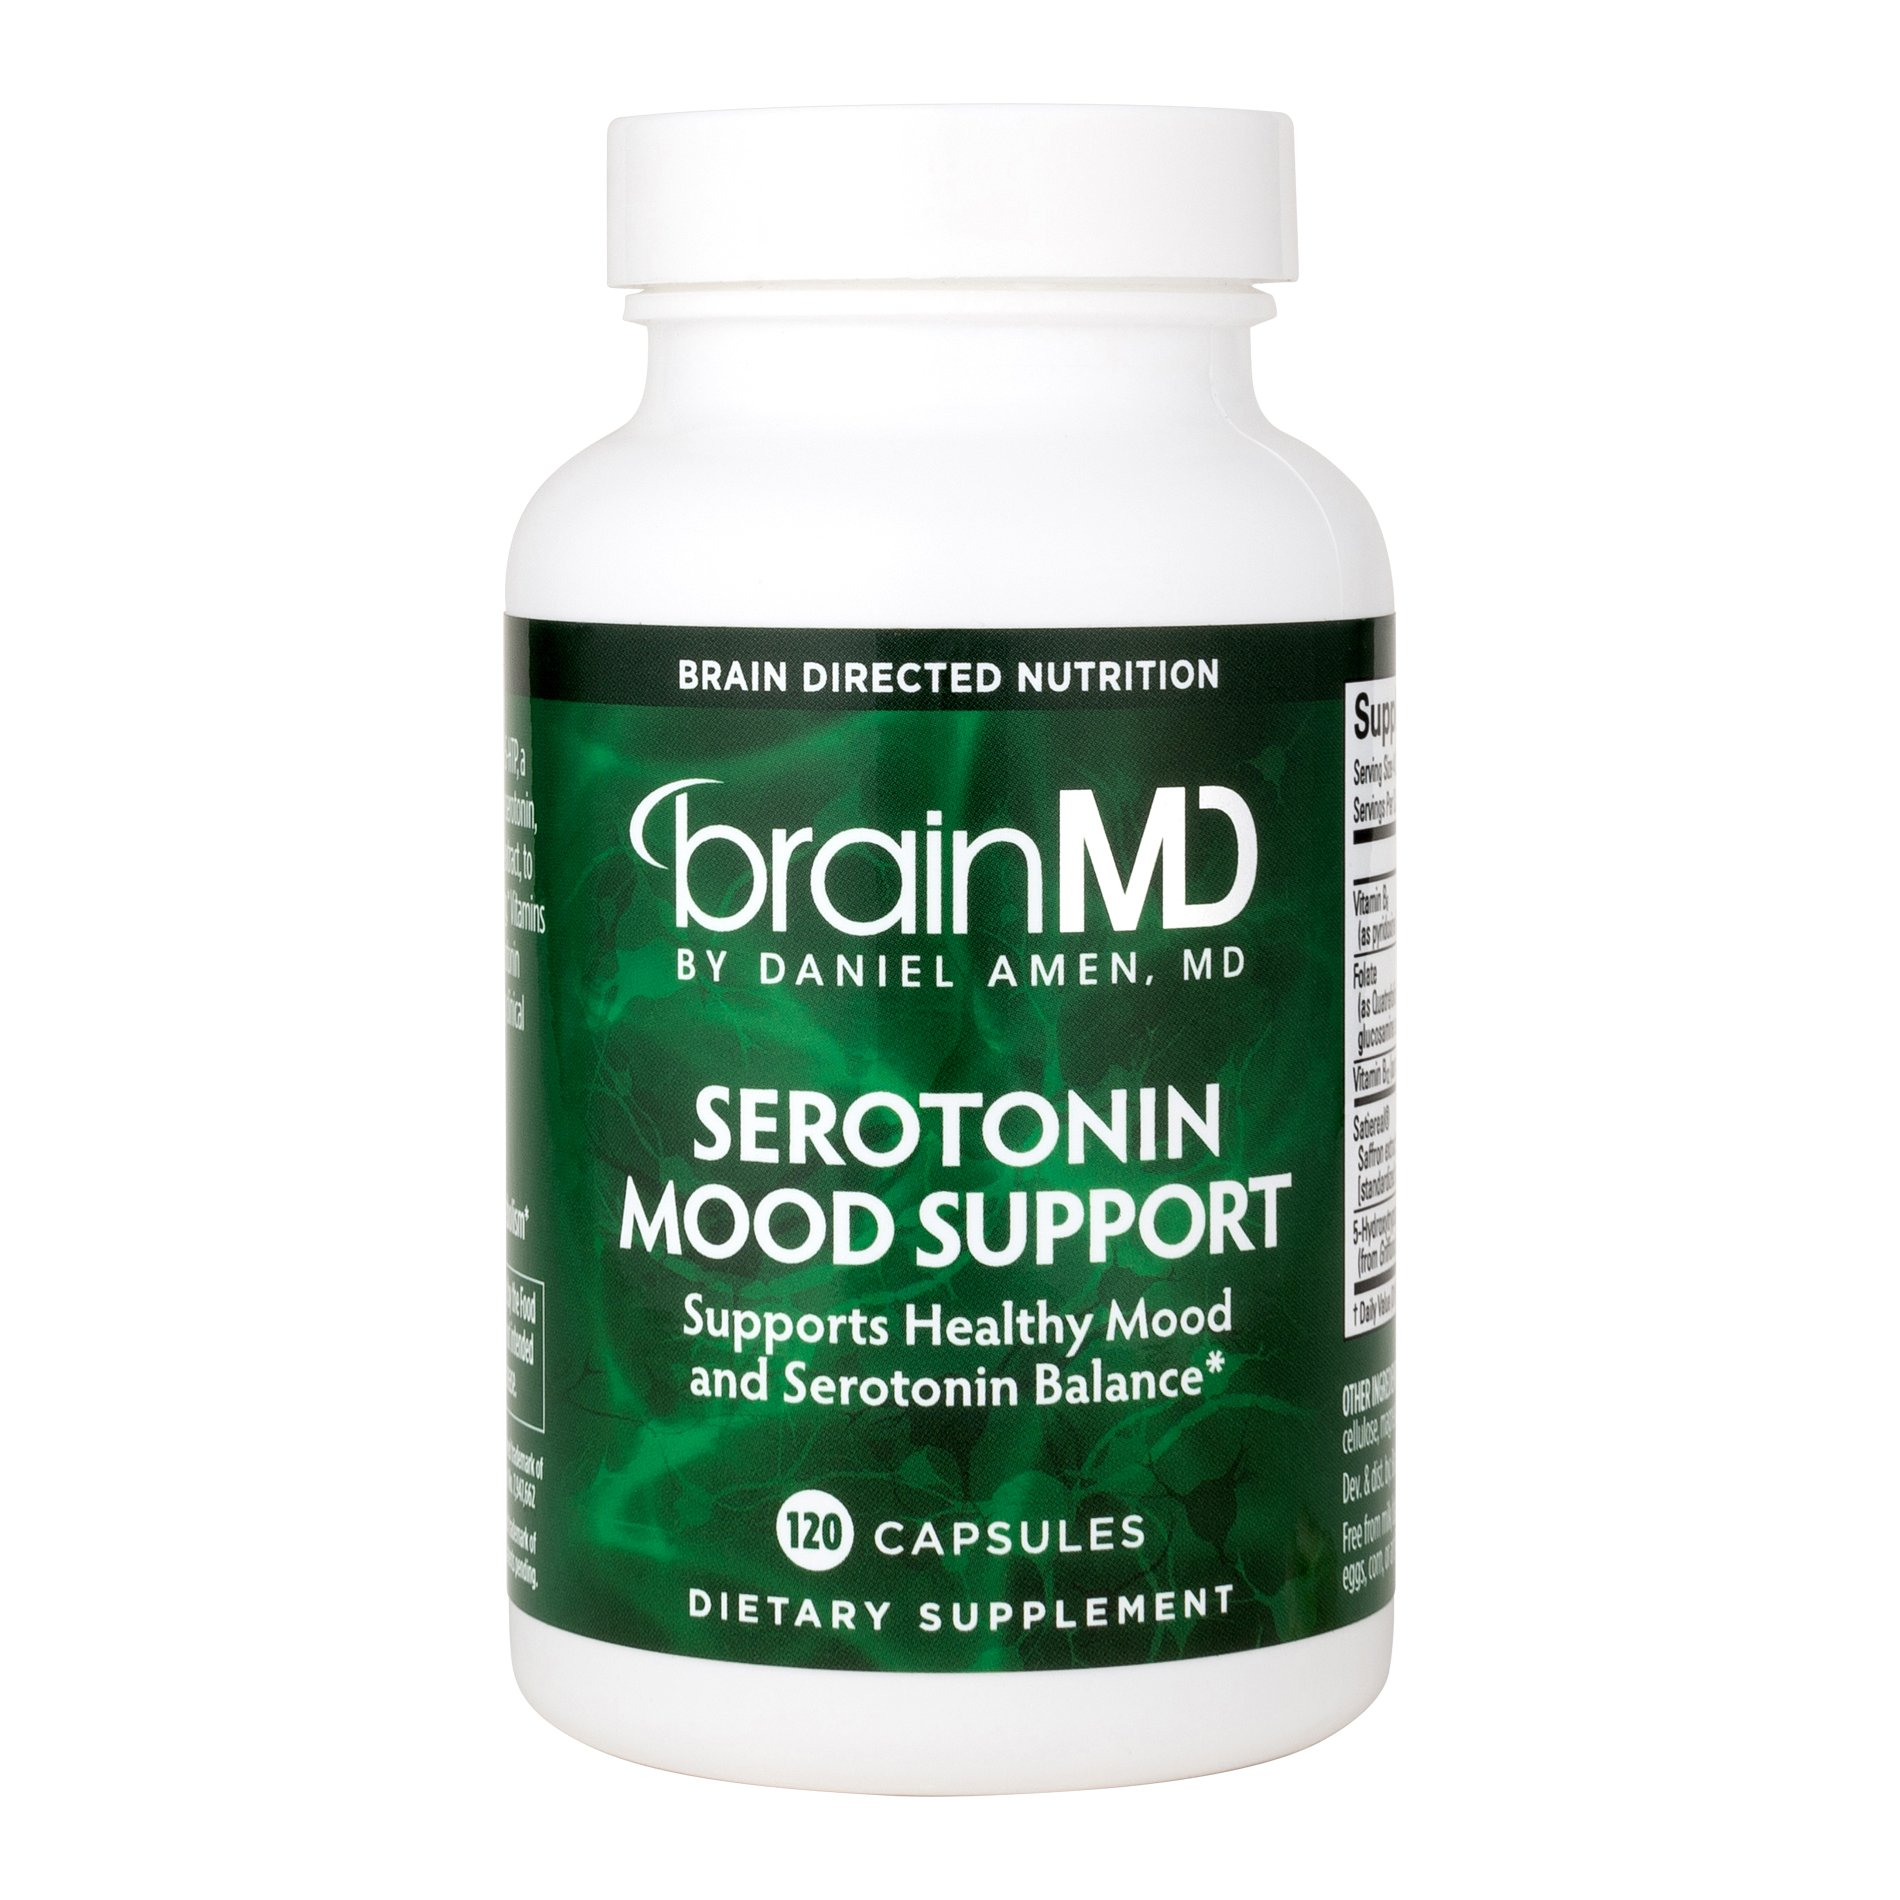 Dr. Amen Serotonin Mood Support Natural Supplement to Enhance Your Mind, Memory and Mood